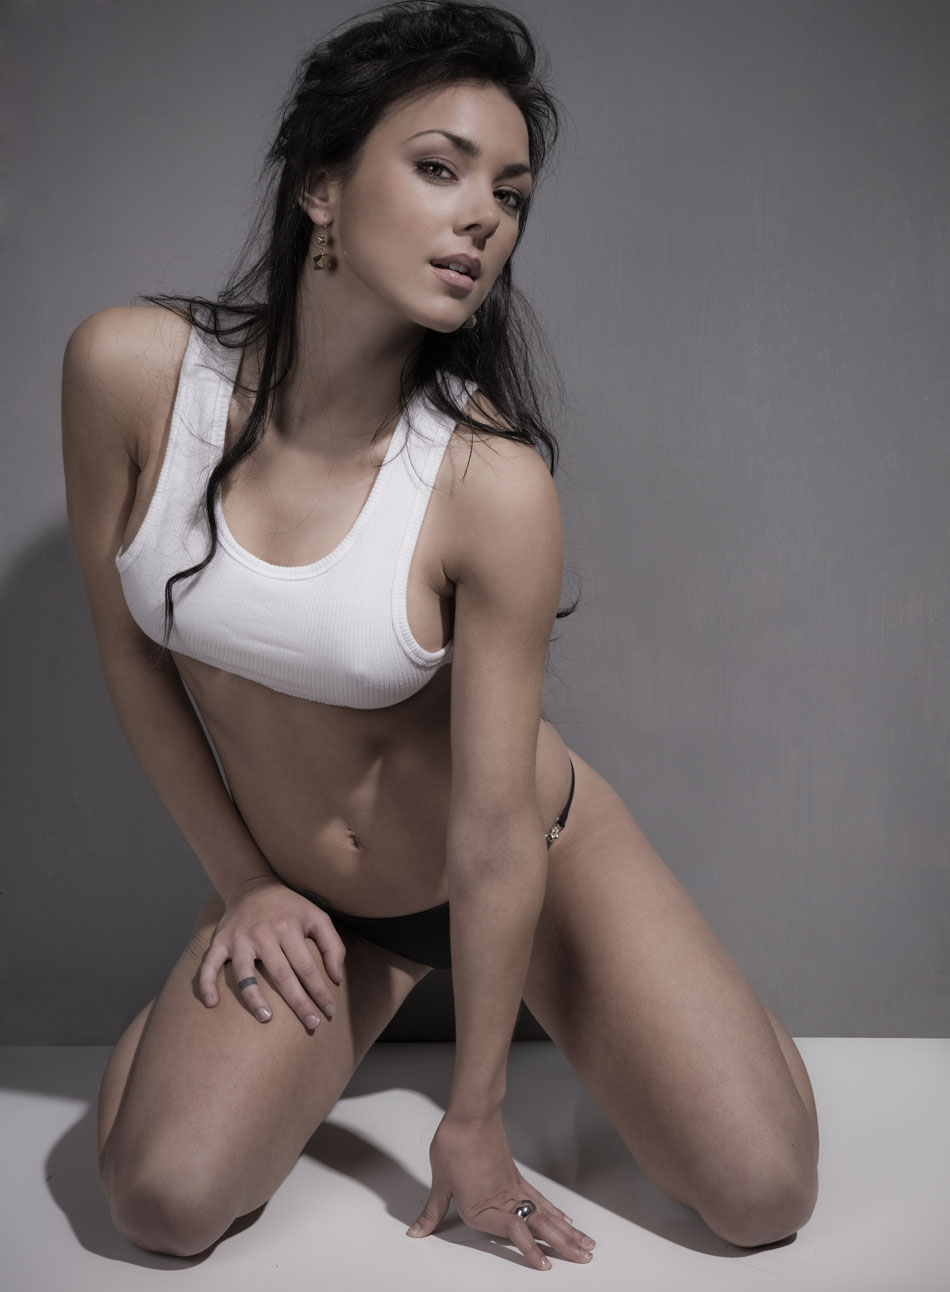 The UCW Radio Show Features Playboy Cover Model And